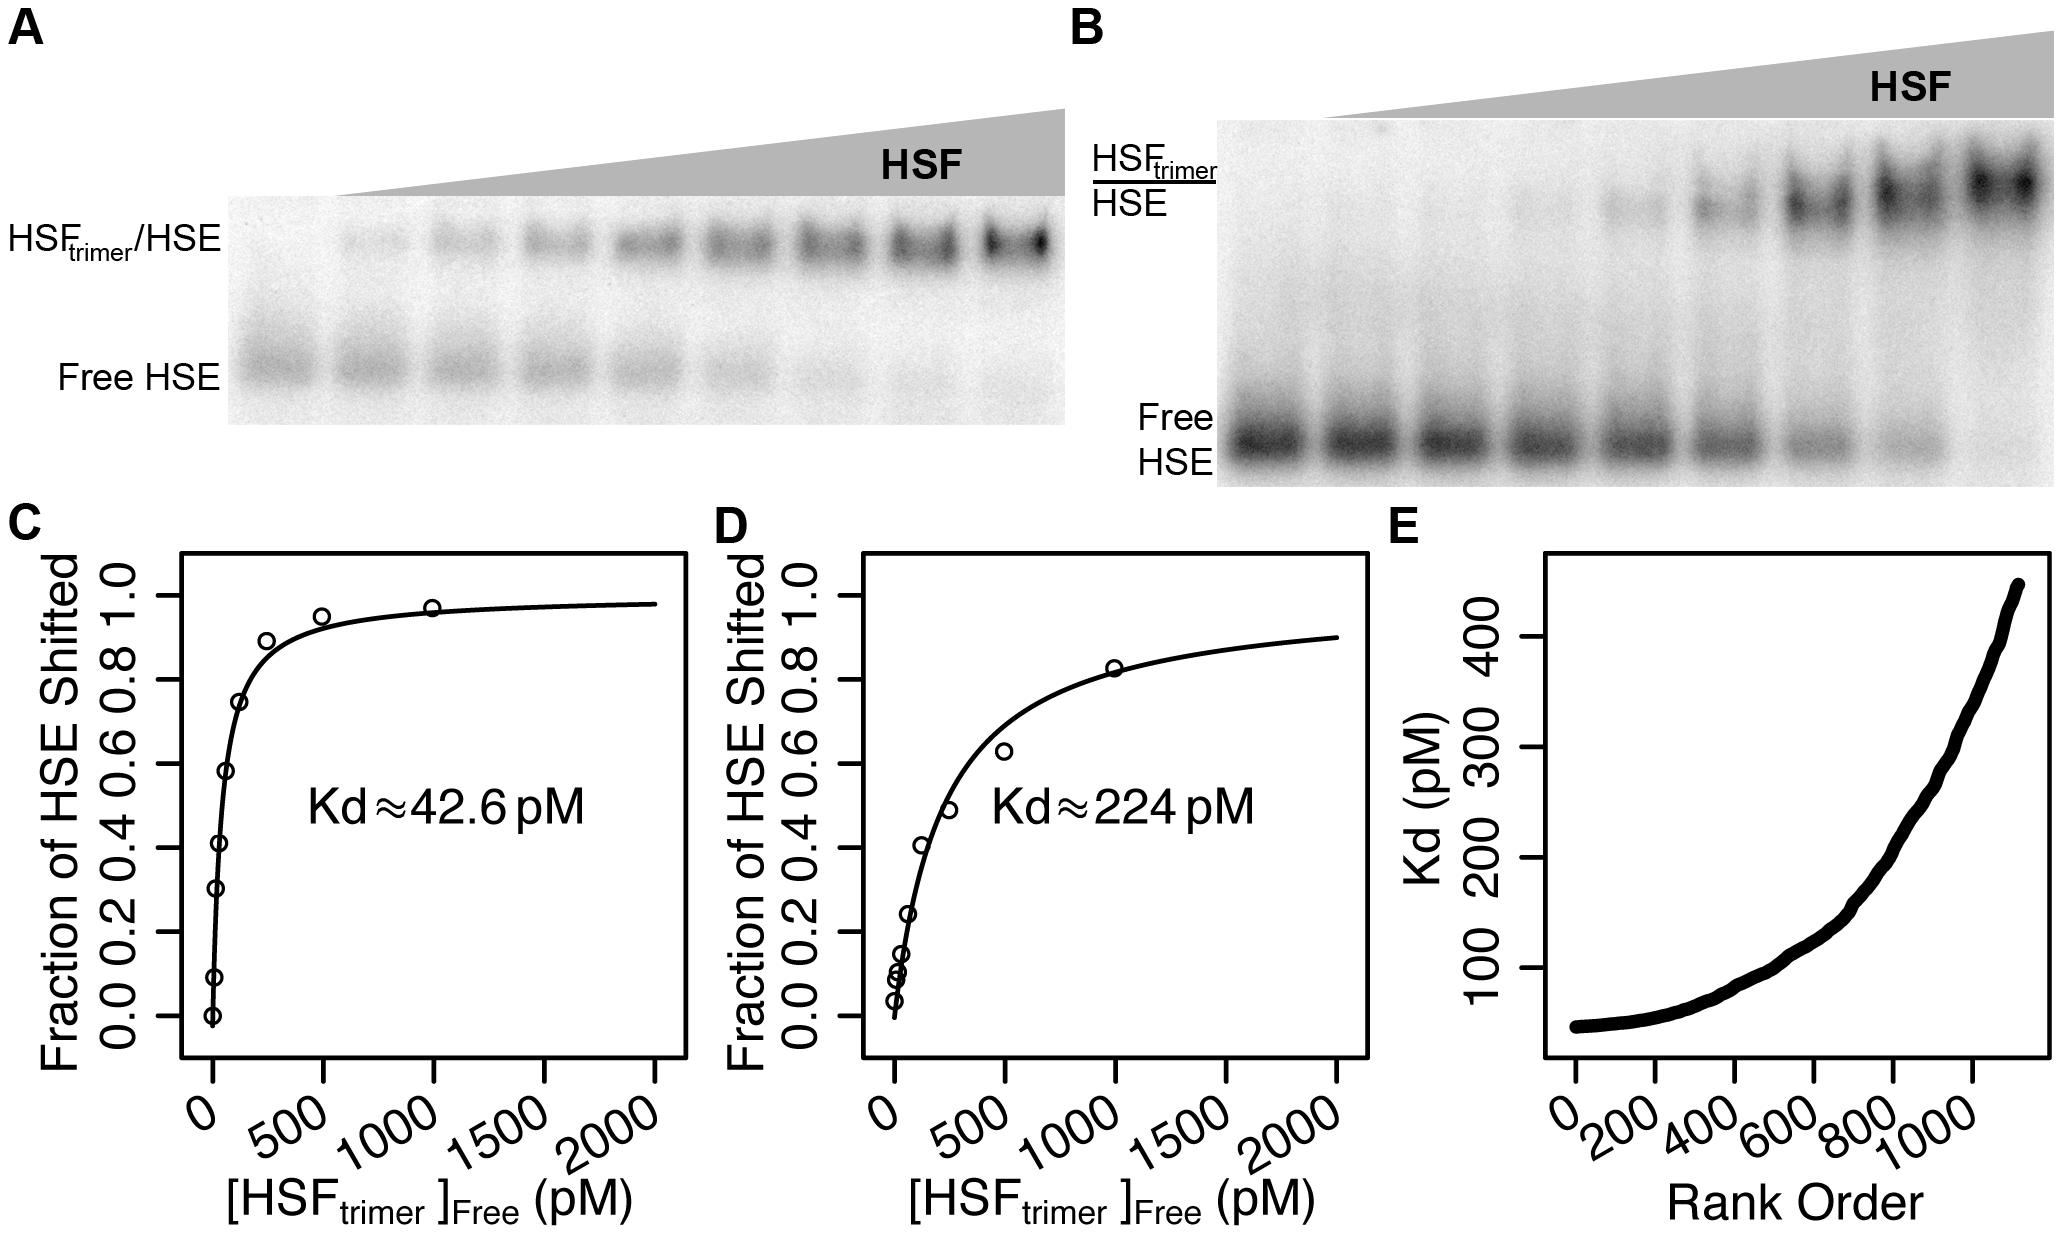 Recombinant HSF binds HSEs with picomolar affinity in vitro.